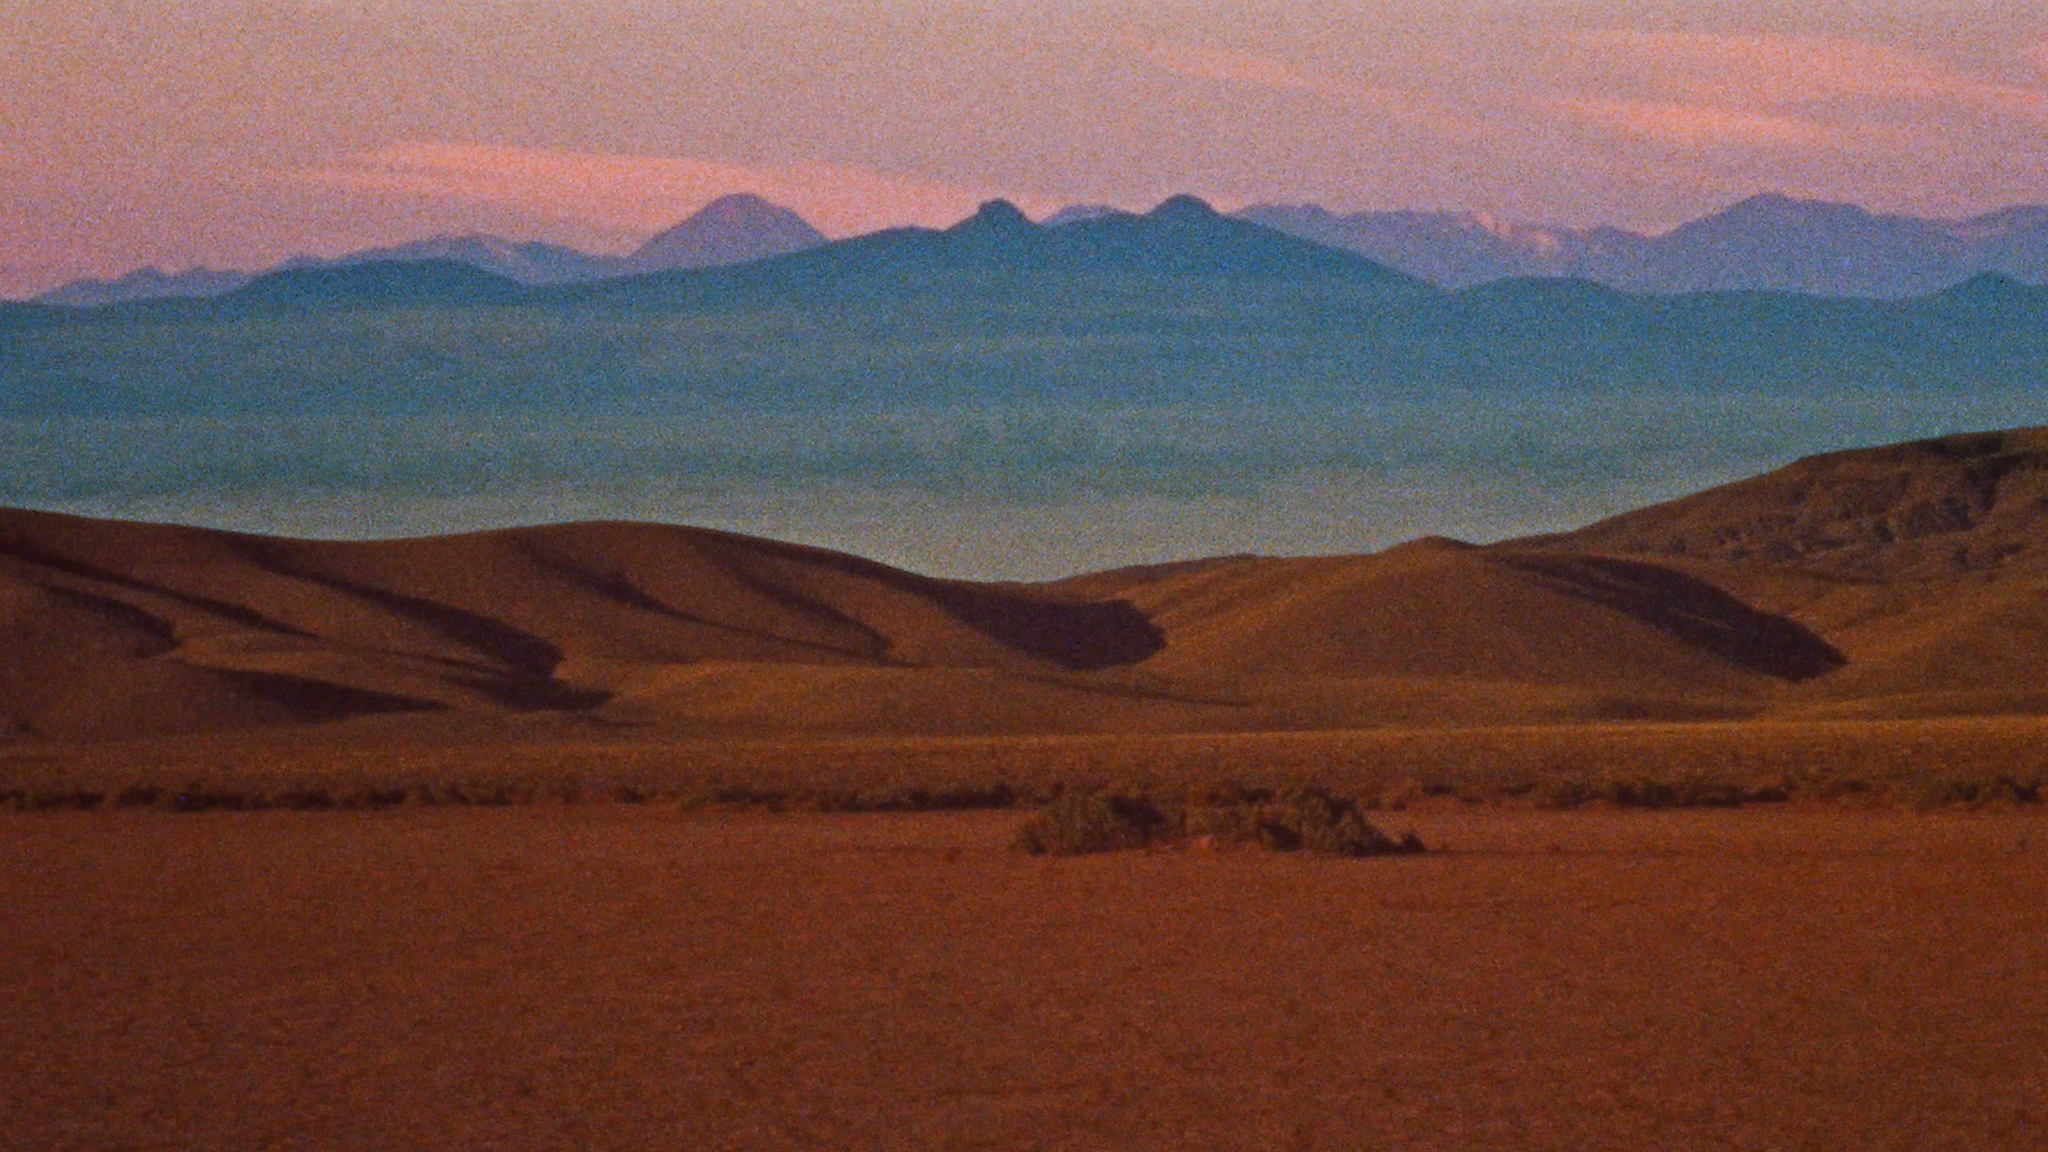 Landscape image of mountains with blue/purple tones in the background and red tones in the foreground